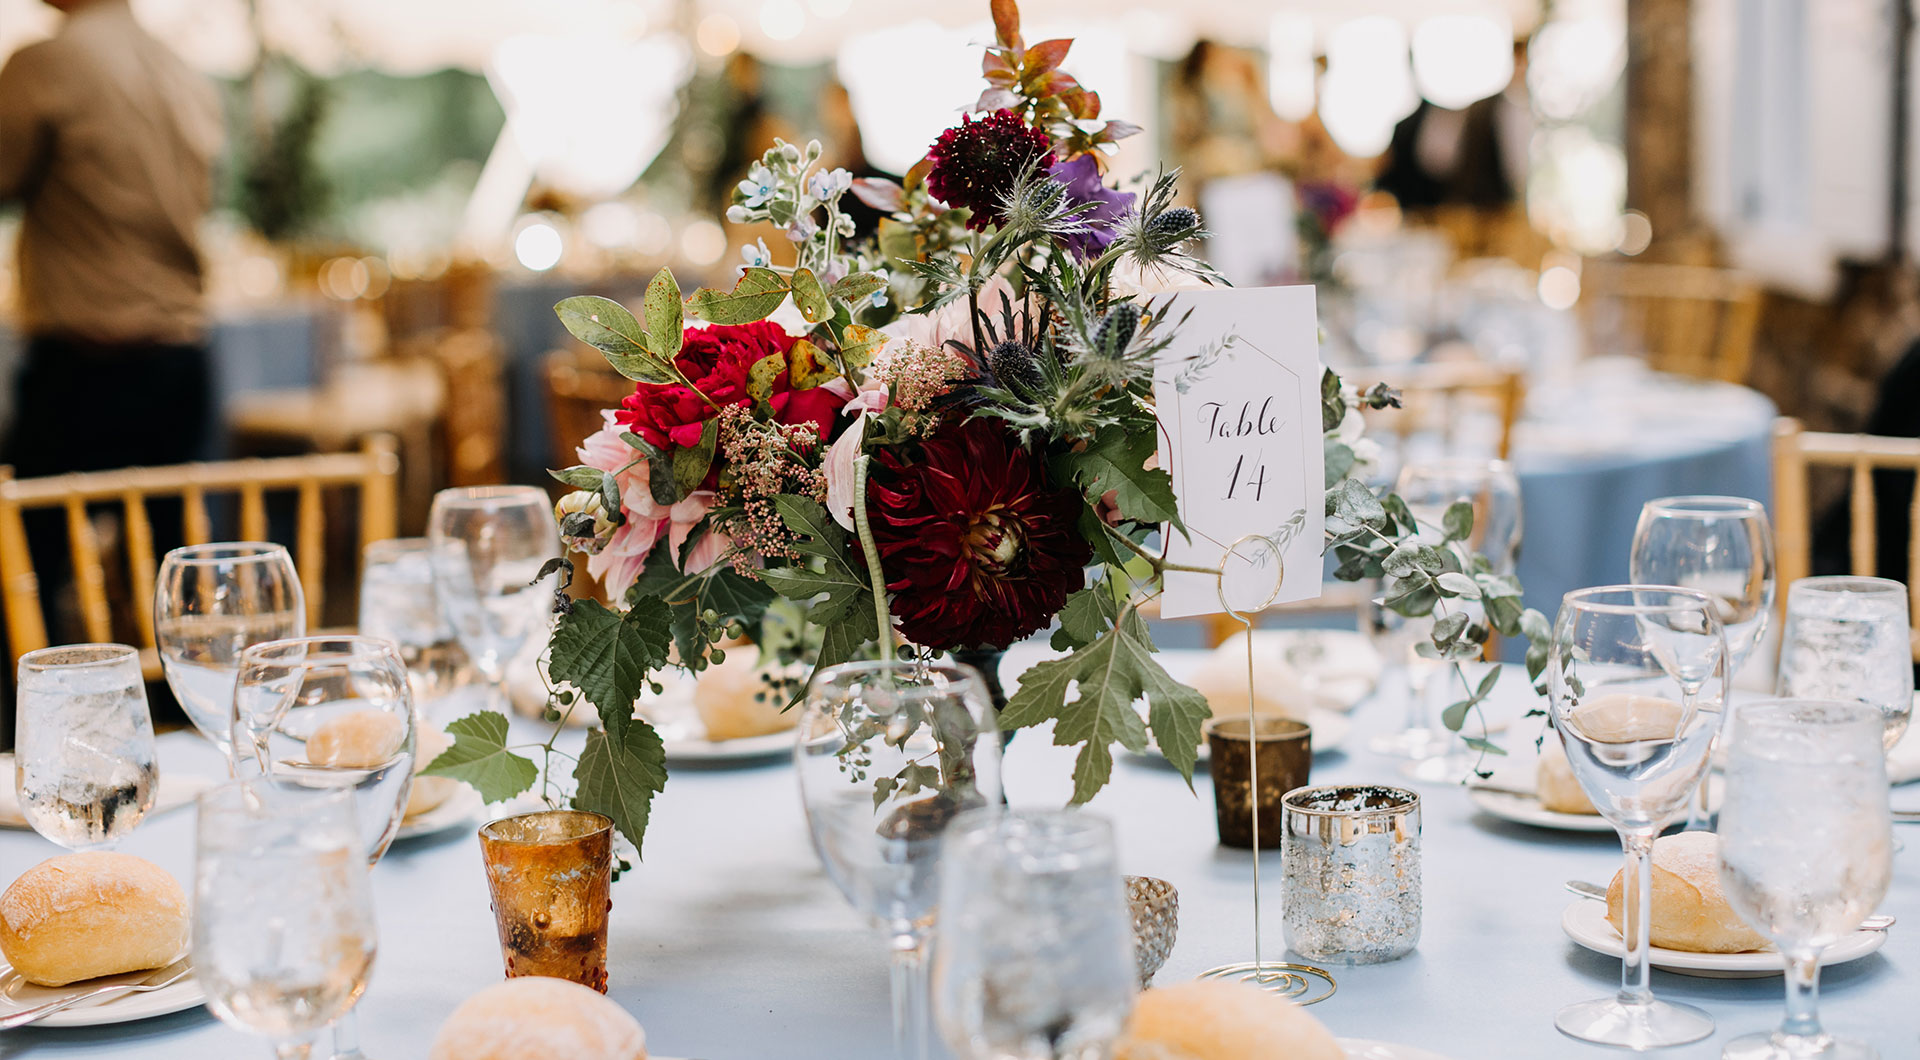 beautifully served table ready for a wedding